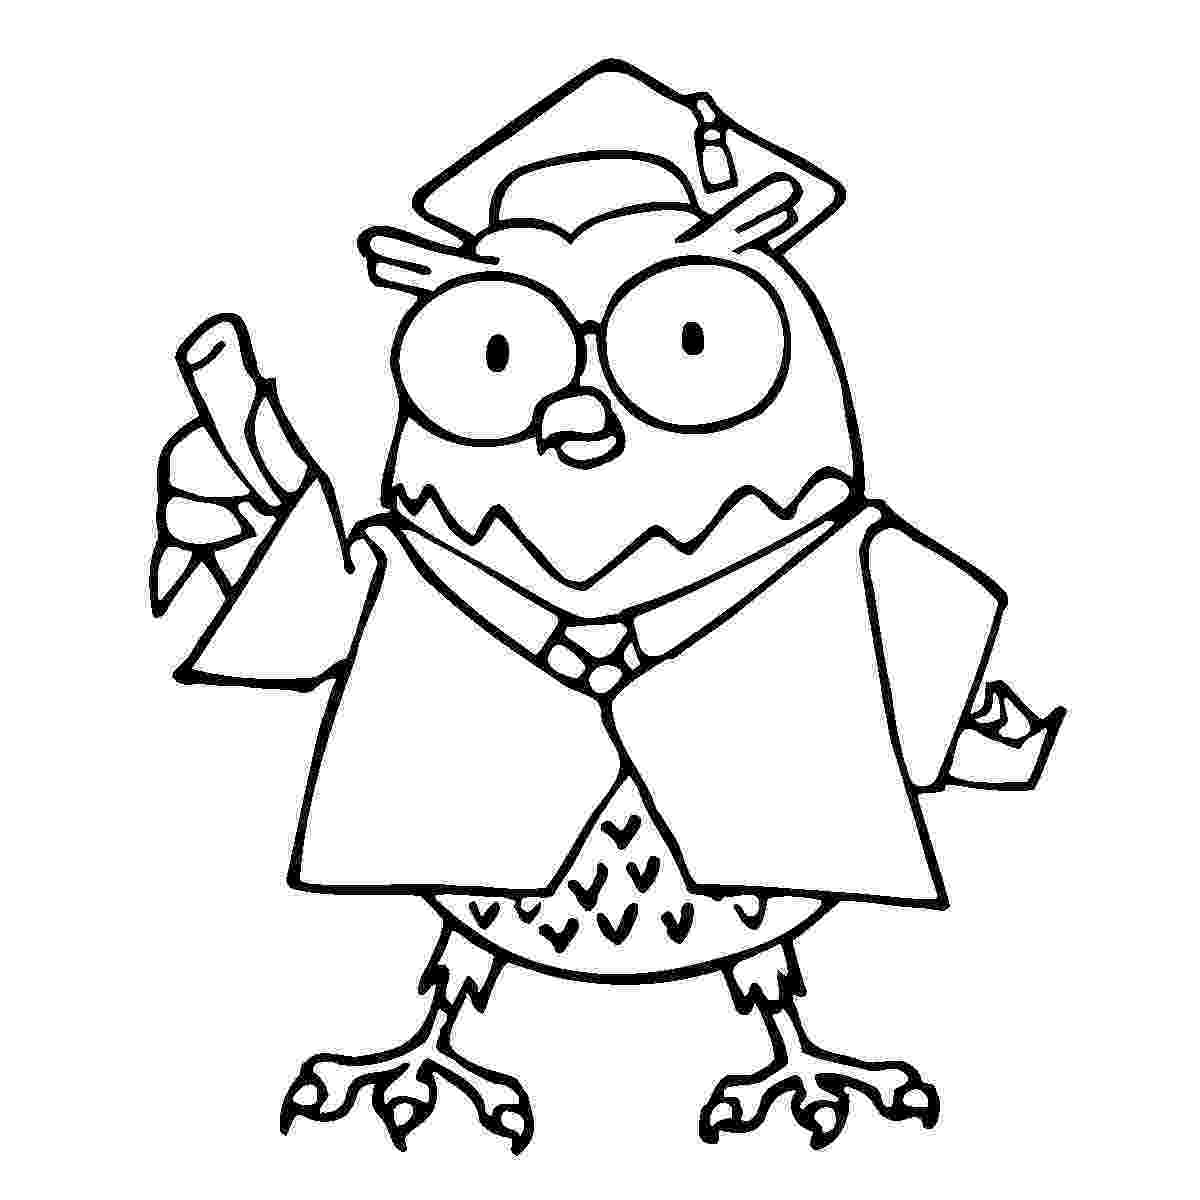 owl coloring picture owls to color on pinterest owl coloring pages owl and coloring owl picture